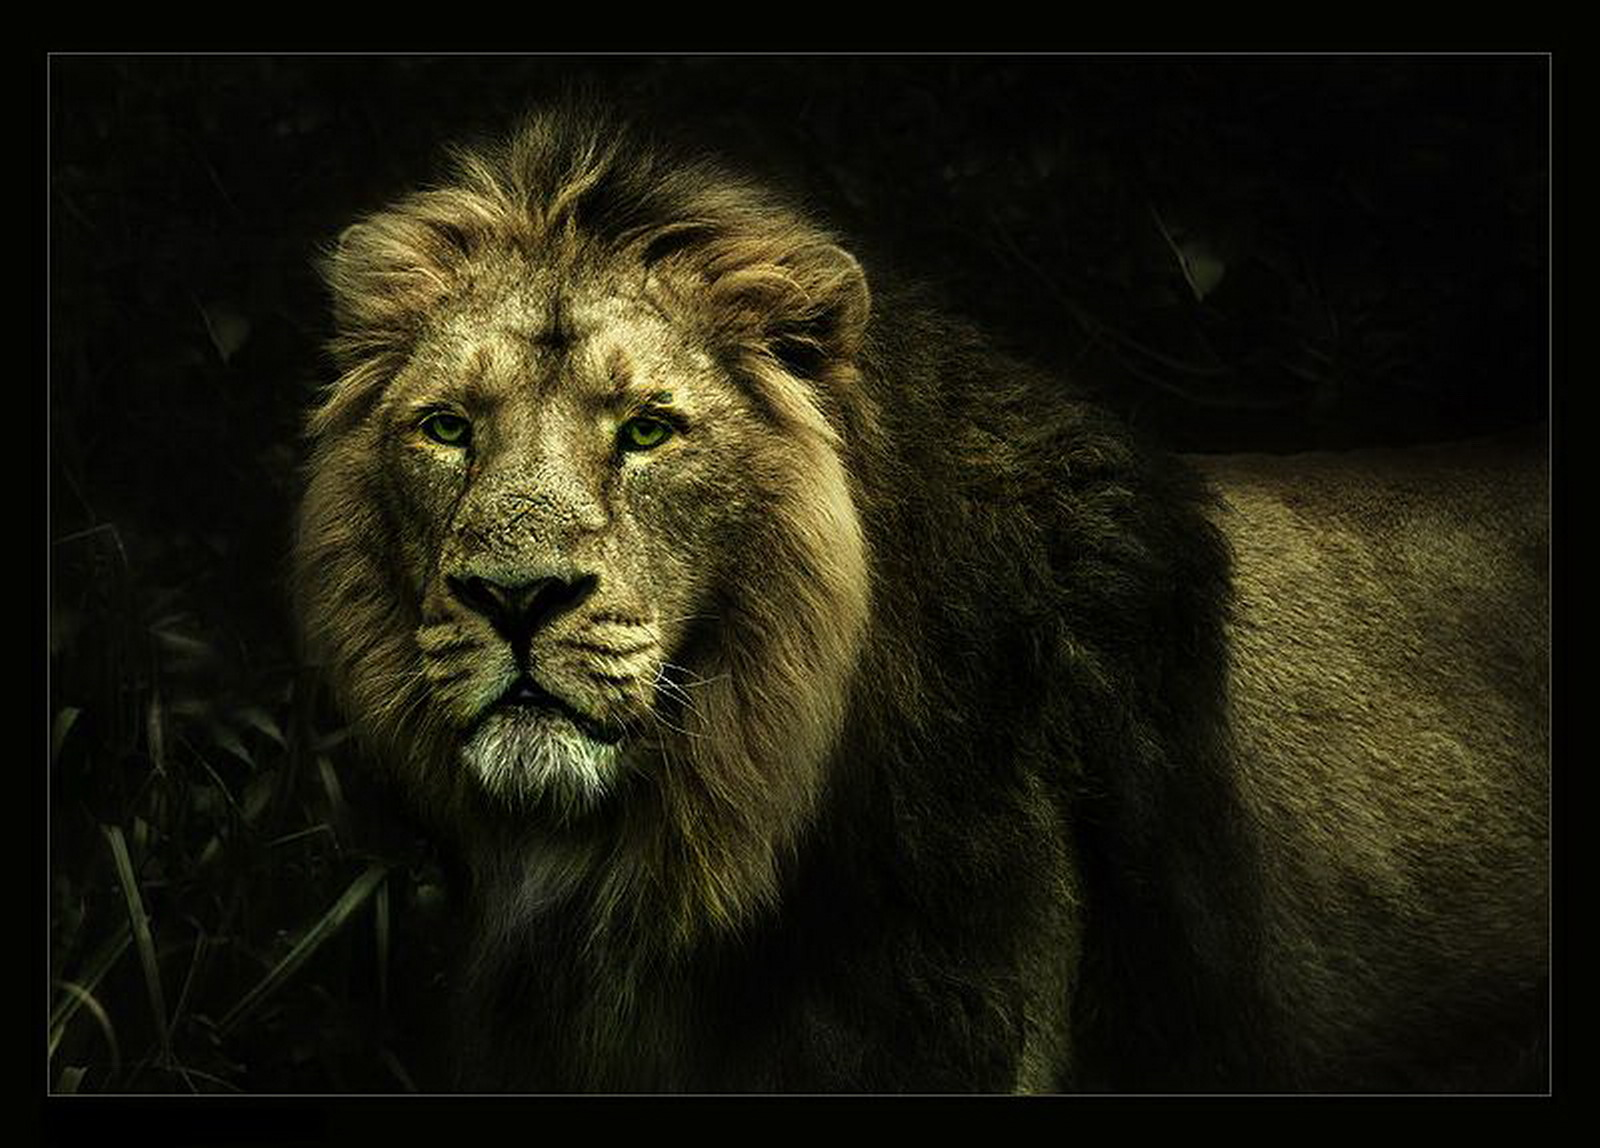 cool lion wallpaper dowload 1600x1148